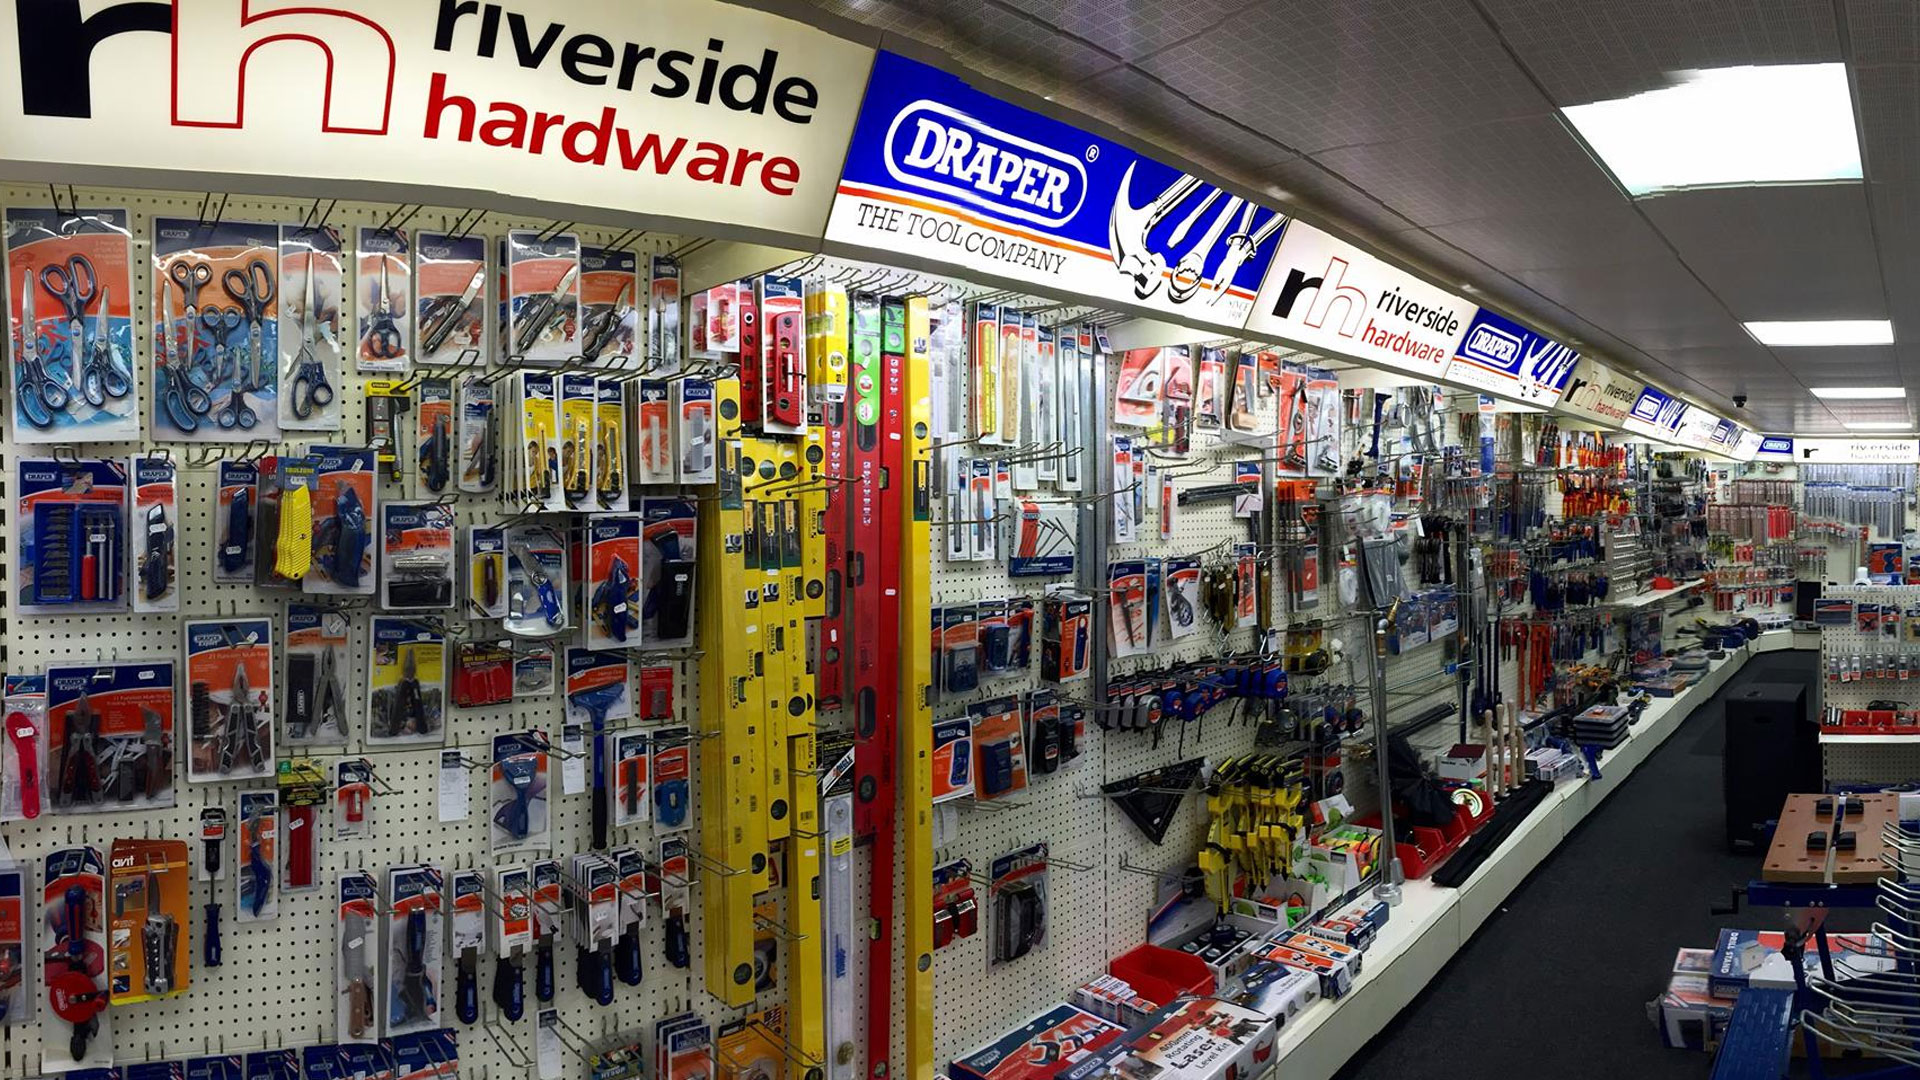 Riverside Hardware gets tooled up online with new website from ITCS